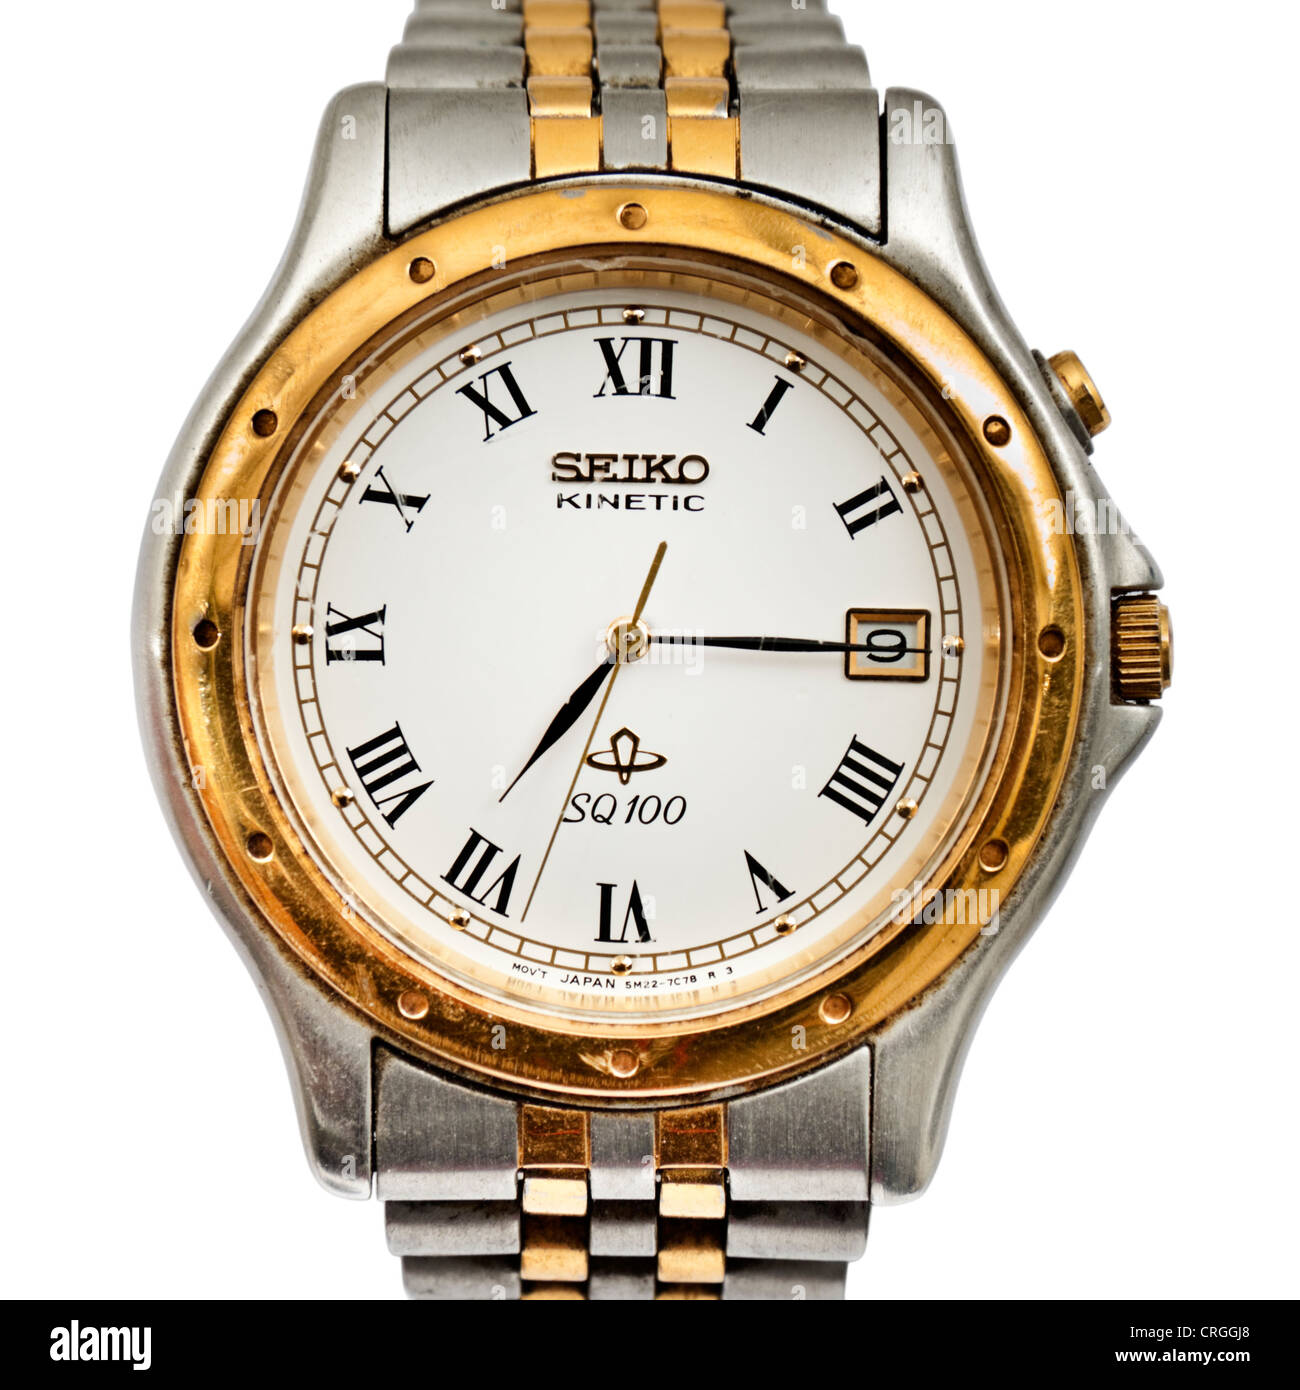 Vintage Seiko SQ100 Kinetic men's analogue wristwatch with date display - Stock Image